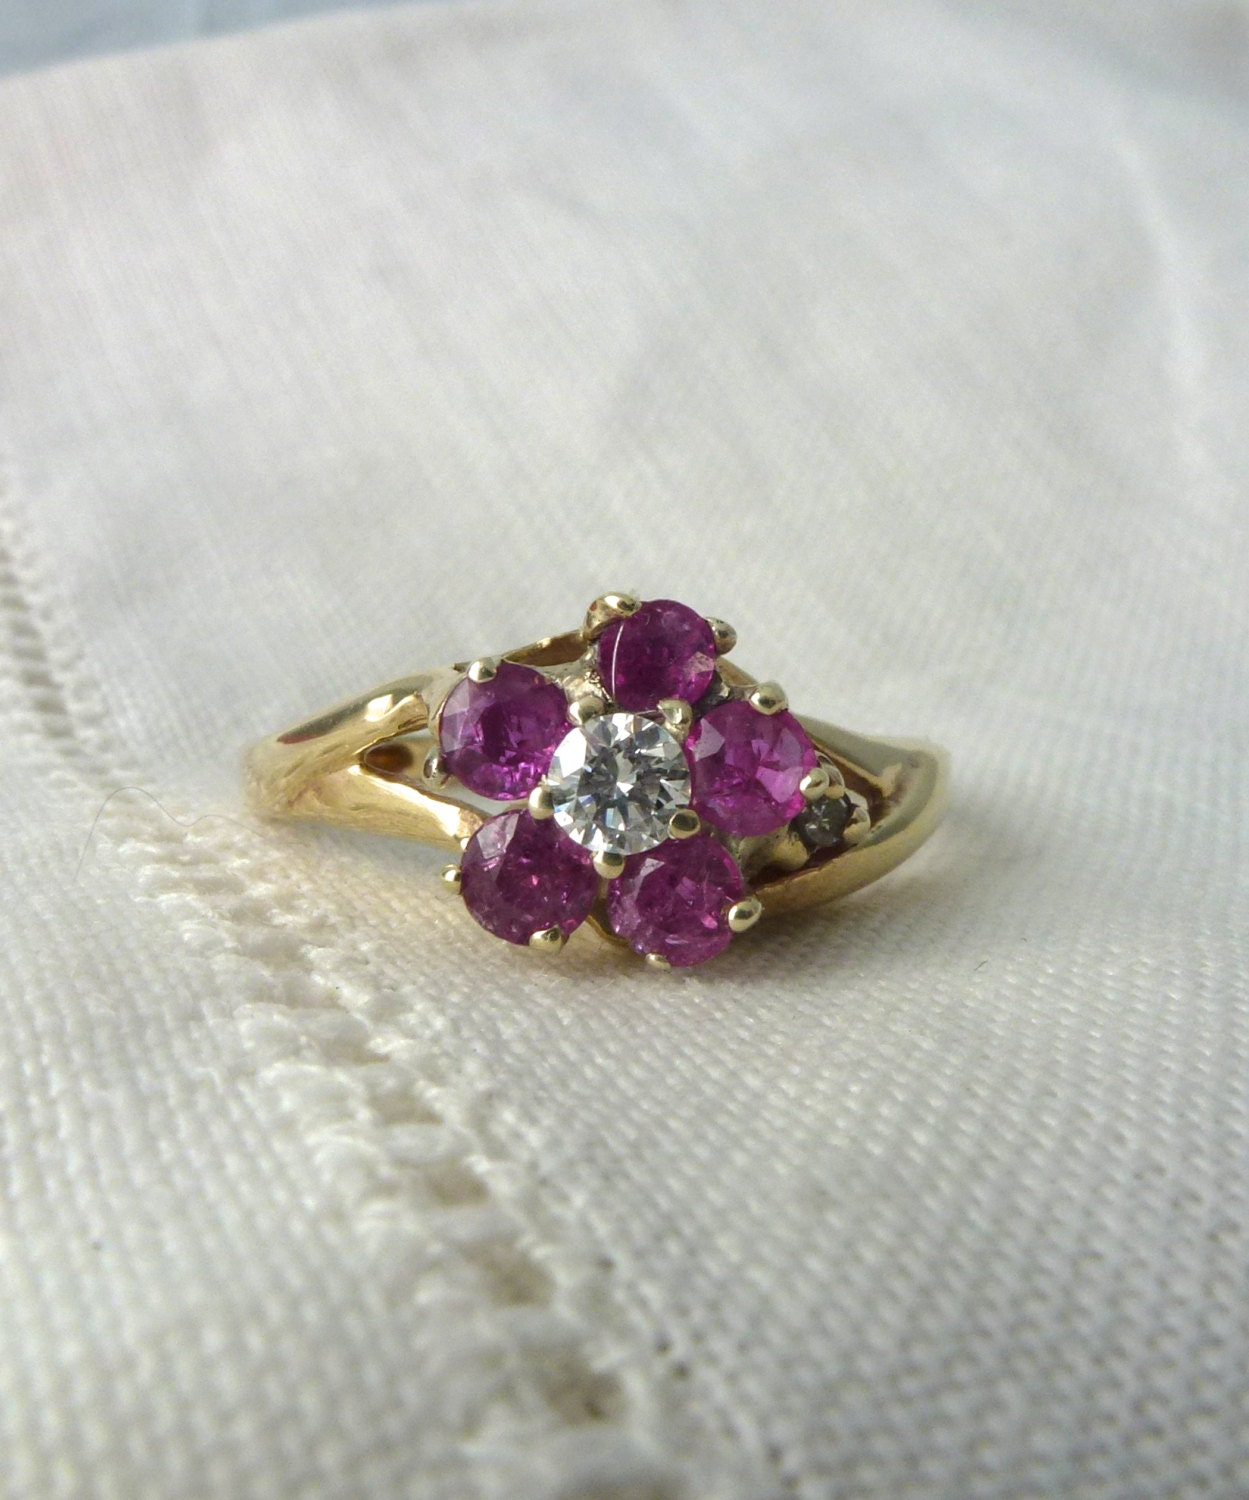 A Natural Pink Sapphire And Diamond Flower Ring In 14kt Yellow Gold